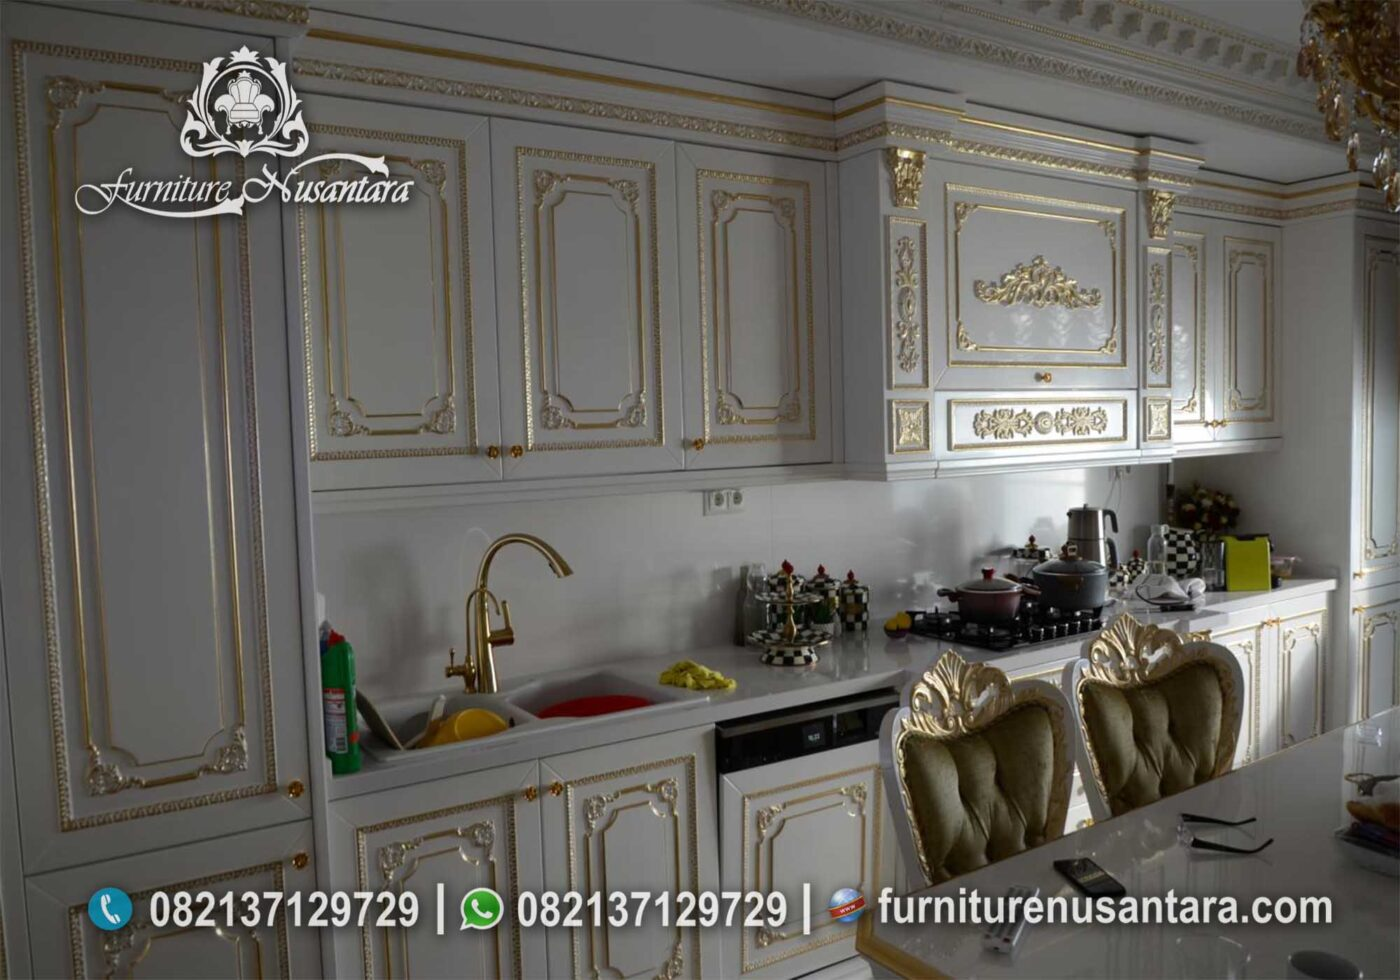 Kitchen Set Duco Putih Ukir Jepara KC-01, Furniture Nusantara